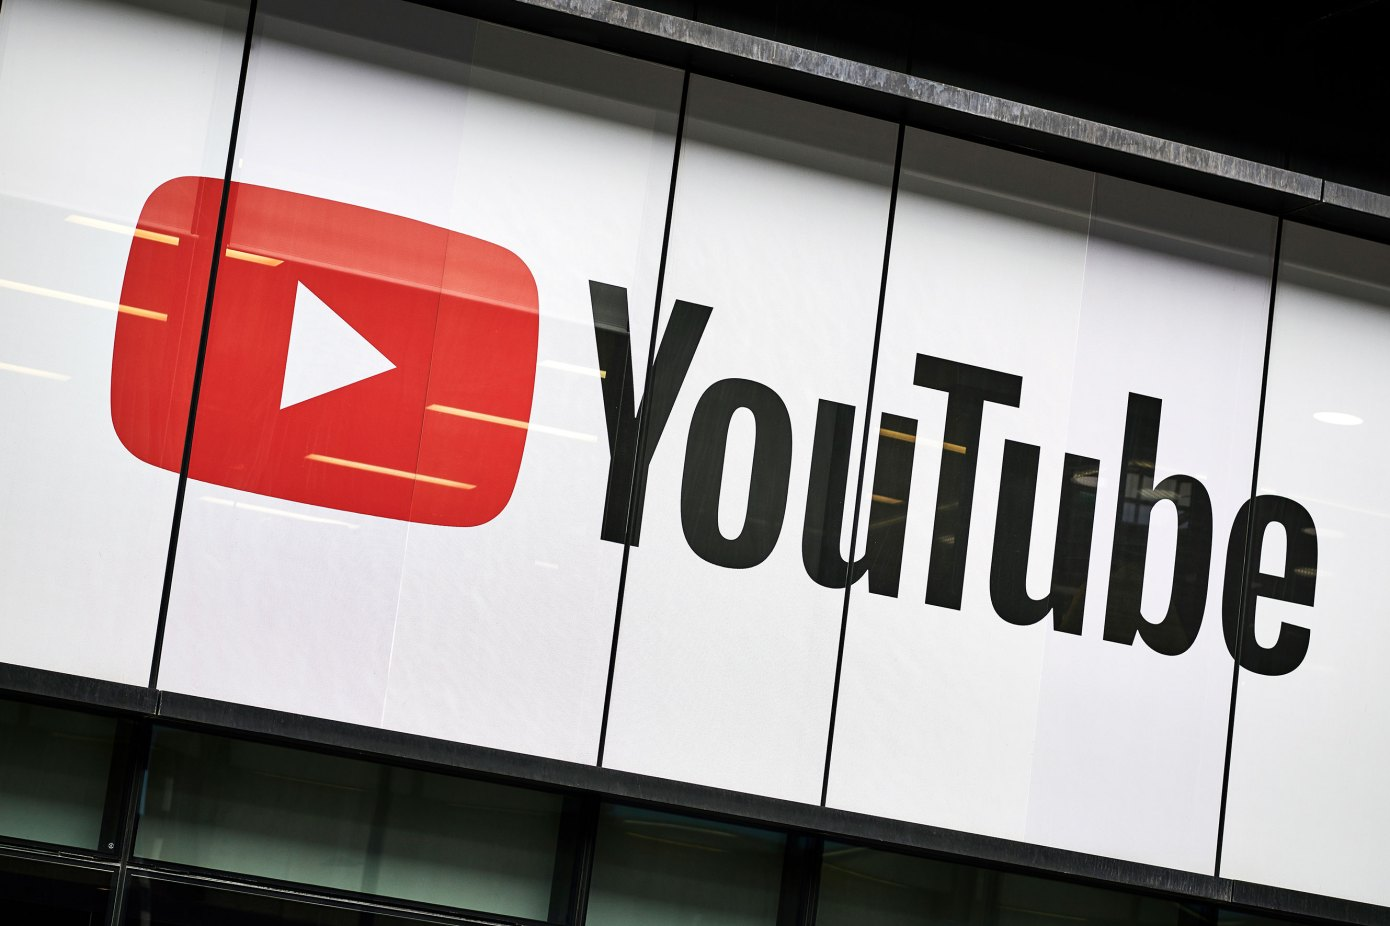 YouTube will start penalizing channels that post election misinformation